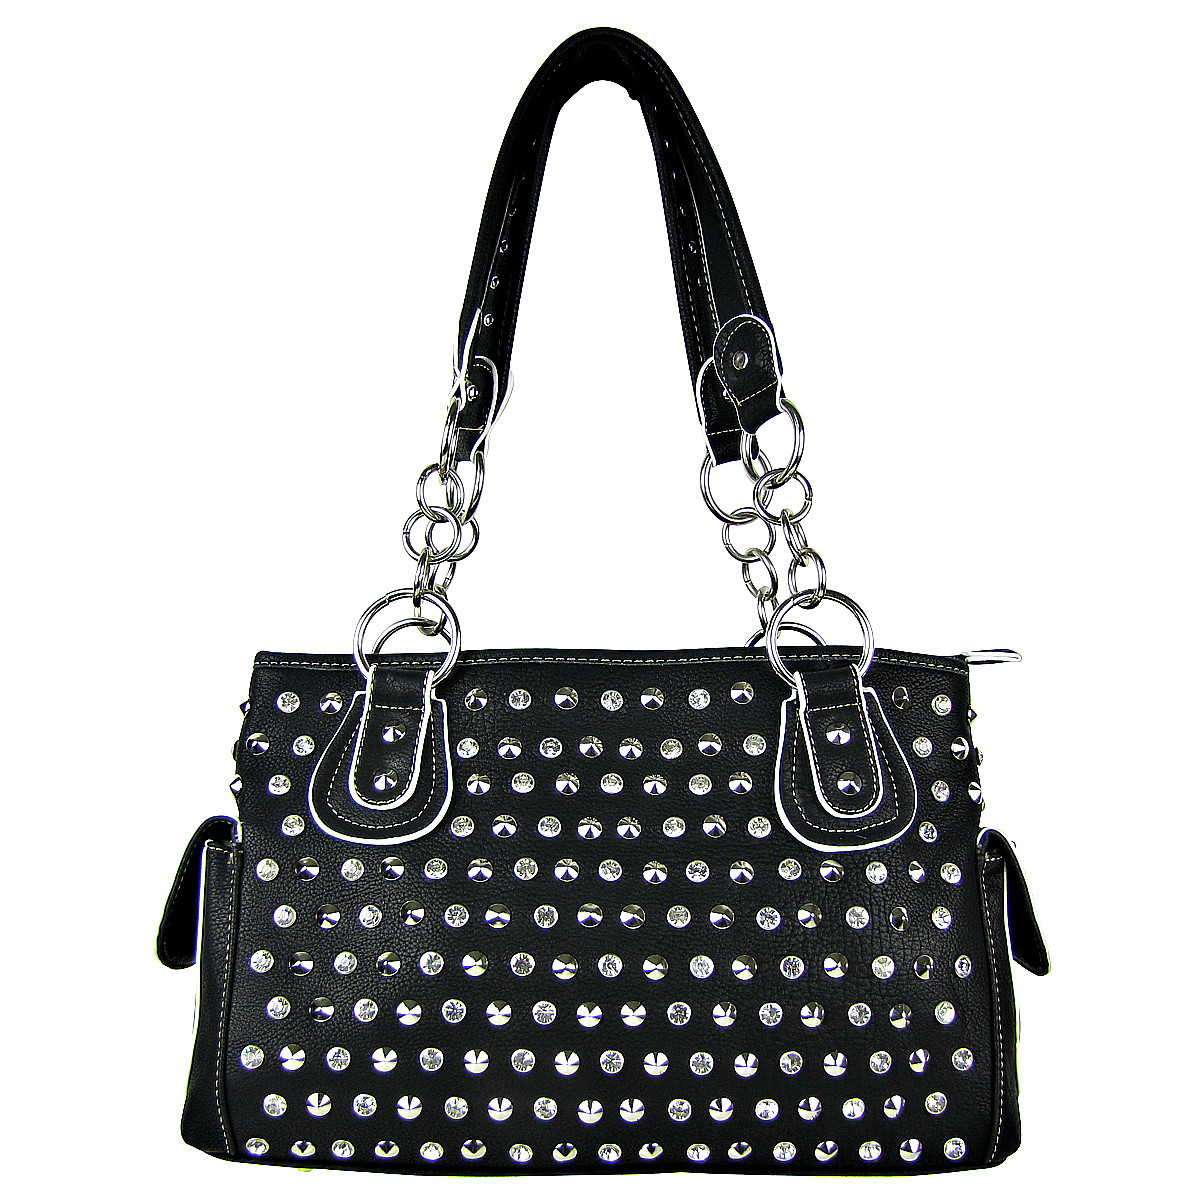 BLACK RHINESTONE STUDDED LEATHERETTE LOOK SHOULDER HANDBAG HB1-HL121590BLK